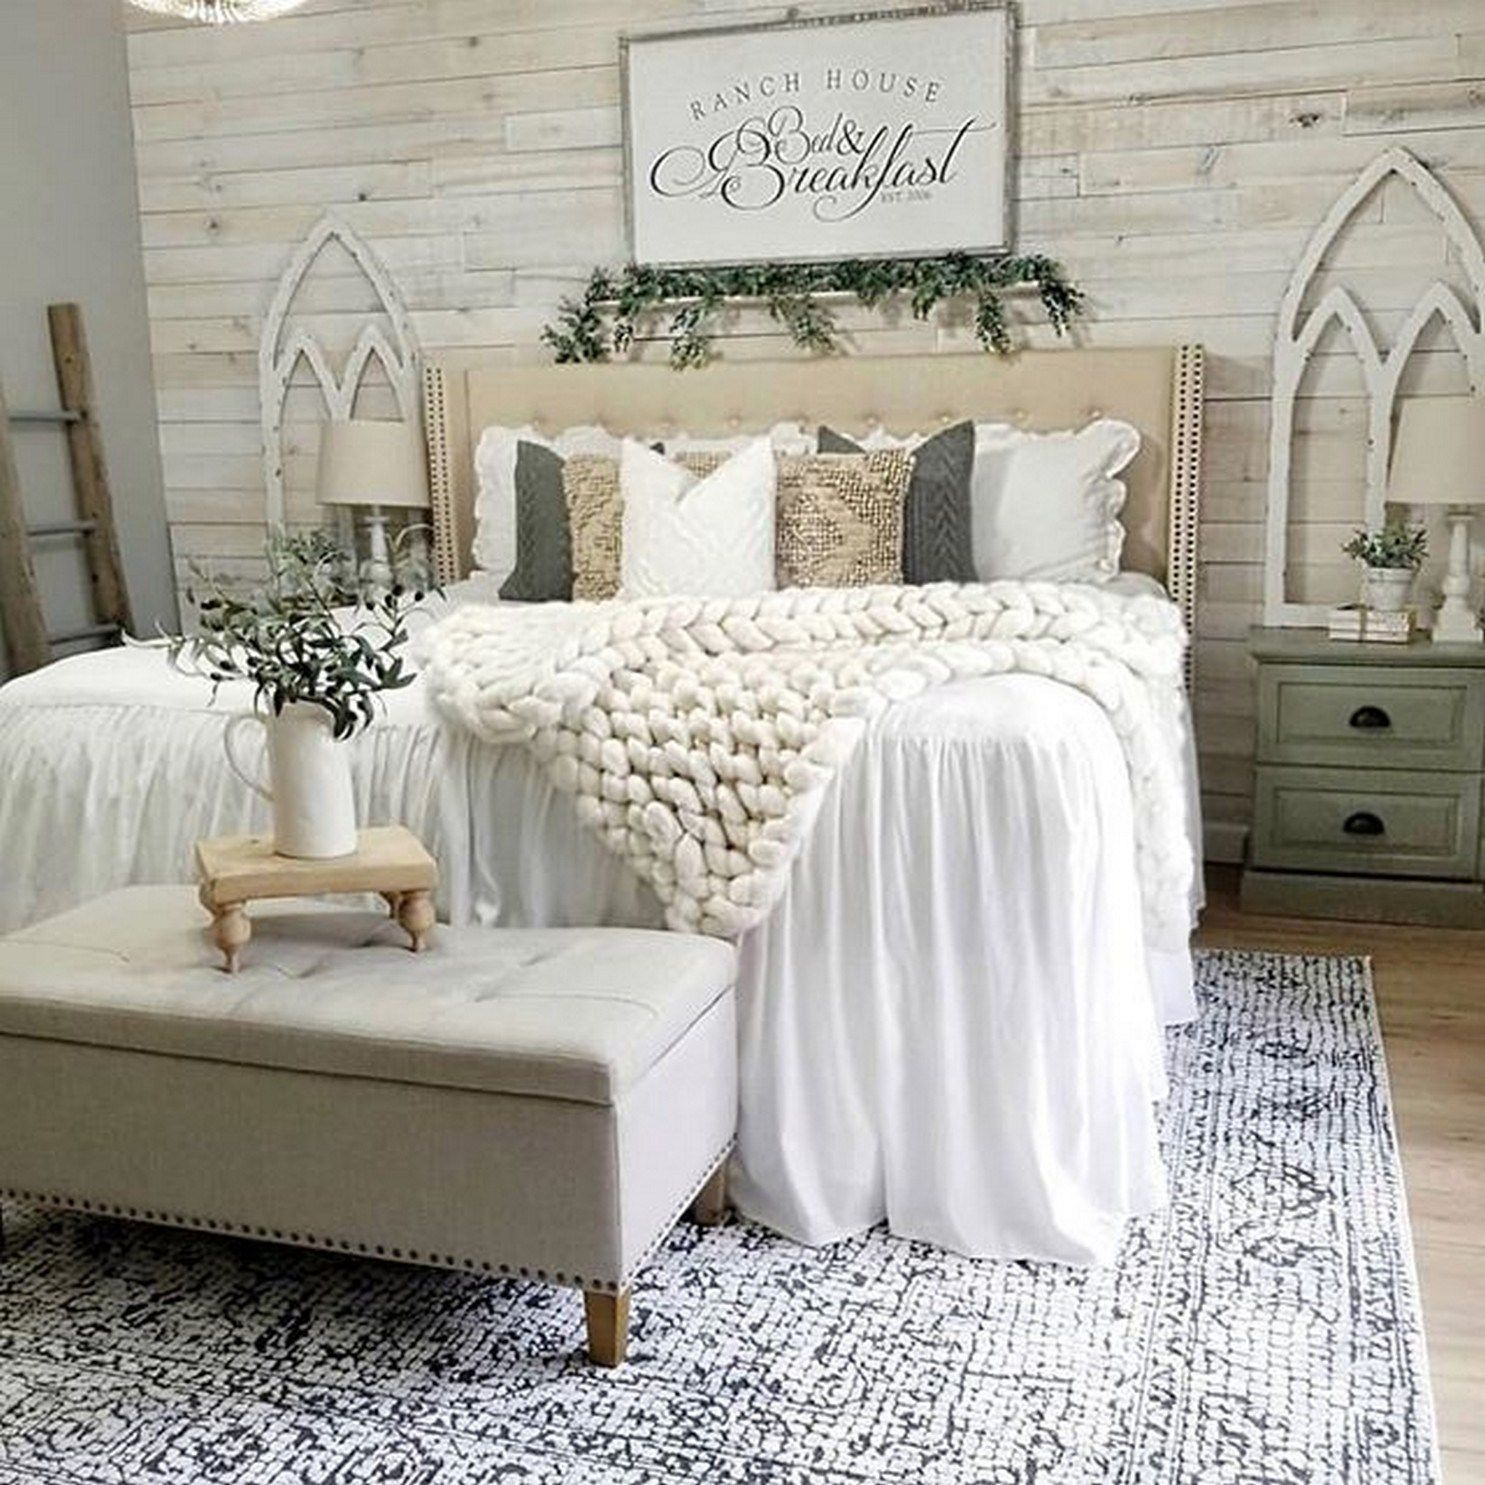 Coastal Bedroom Ideas Elements Of Coastal Decorating Style The Good Lu In 2020 Modern Farmhouse Style Bedroom Farmhouse Bedroom Decor Farmhouse Style Bedroom Decor